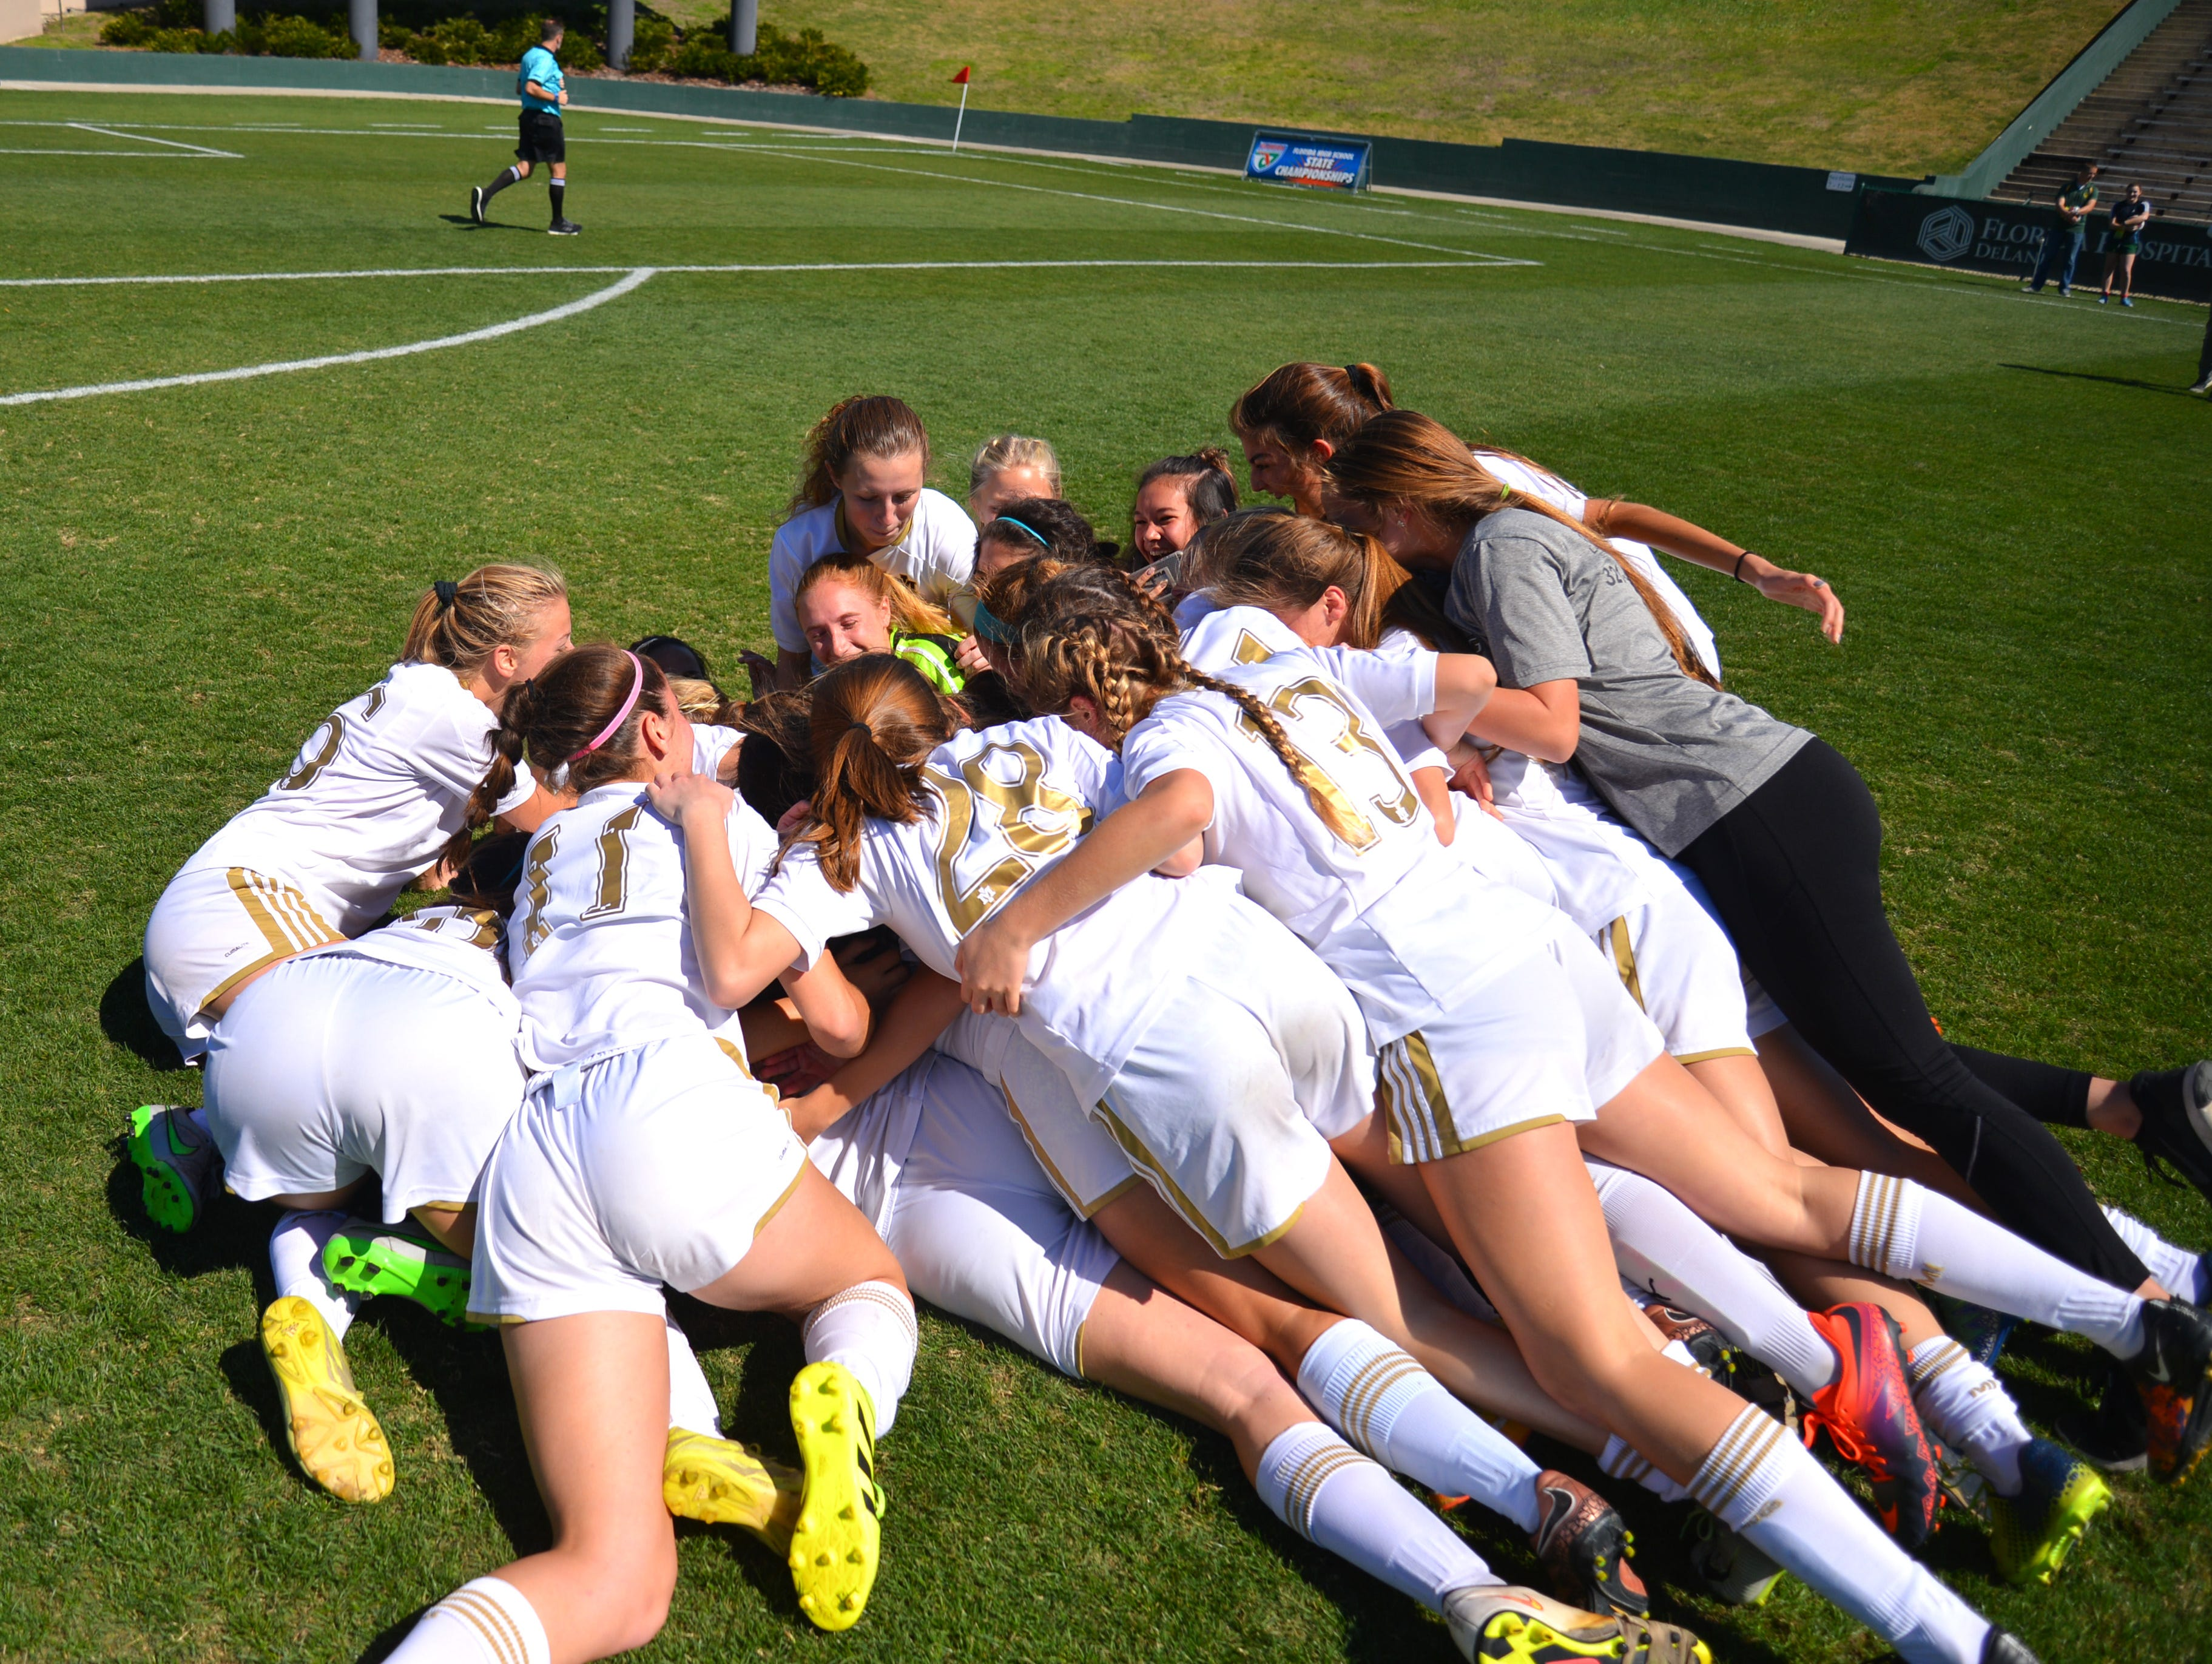 The Merritt Island High girls soccer team celebrates after winning the 3A state championship on Friday, Feb. 17, 2017.